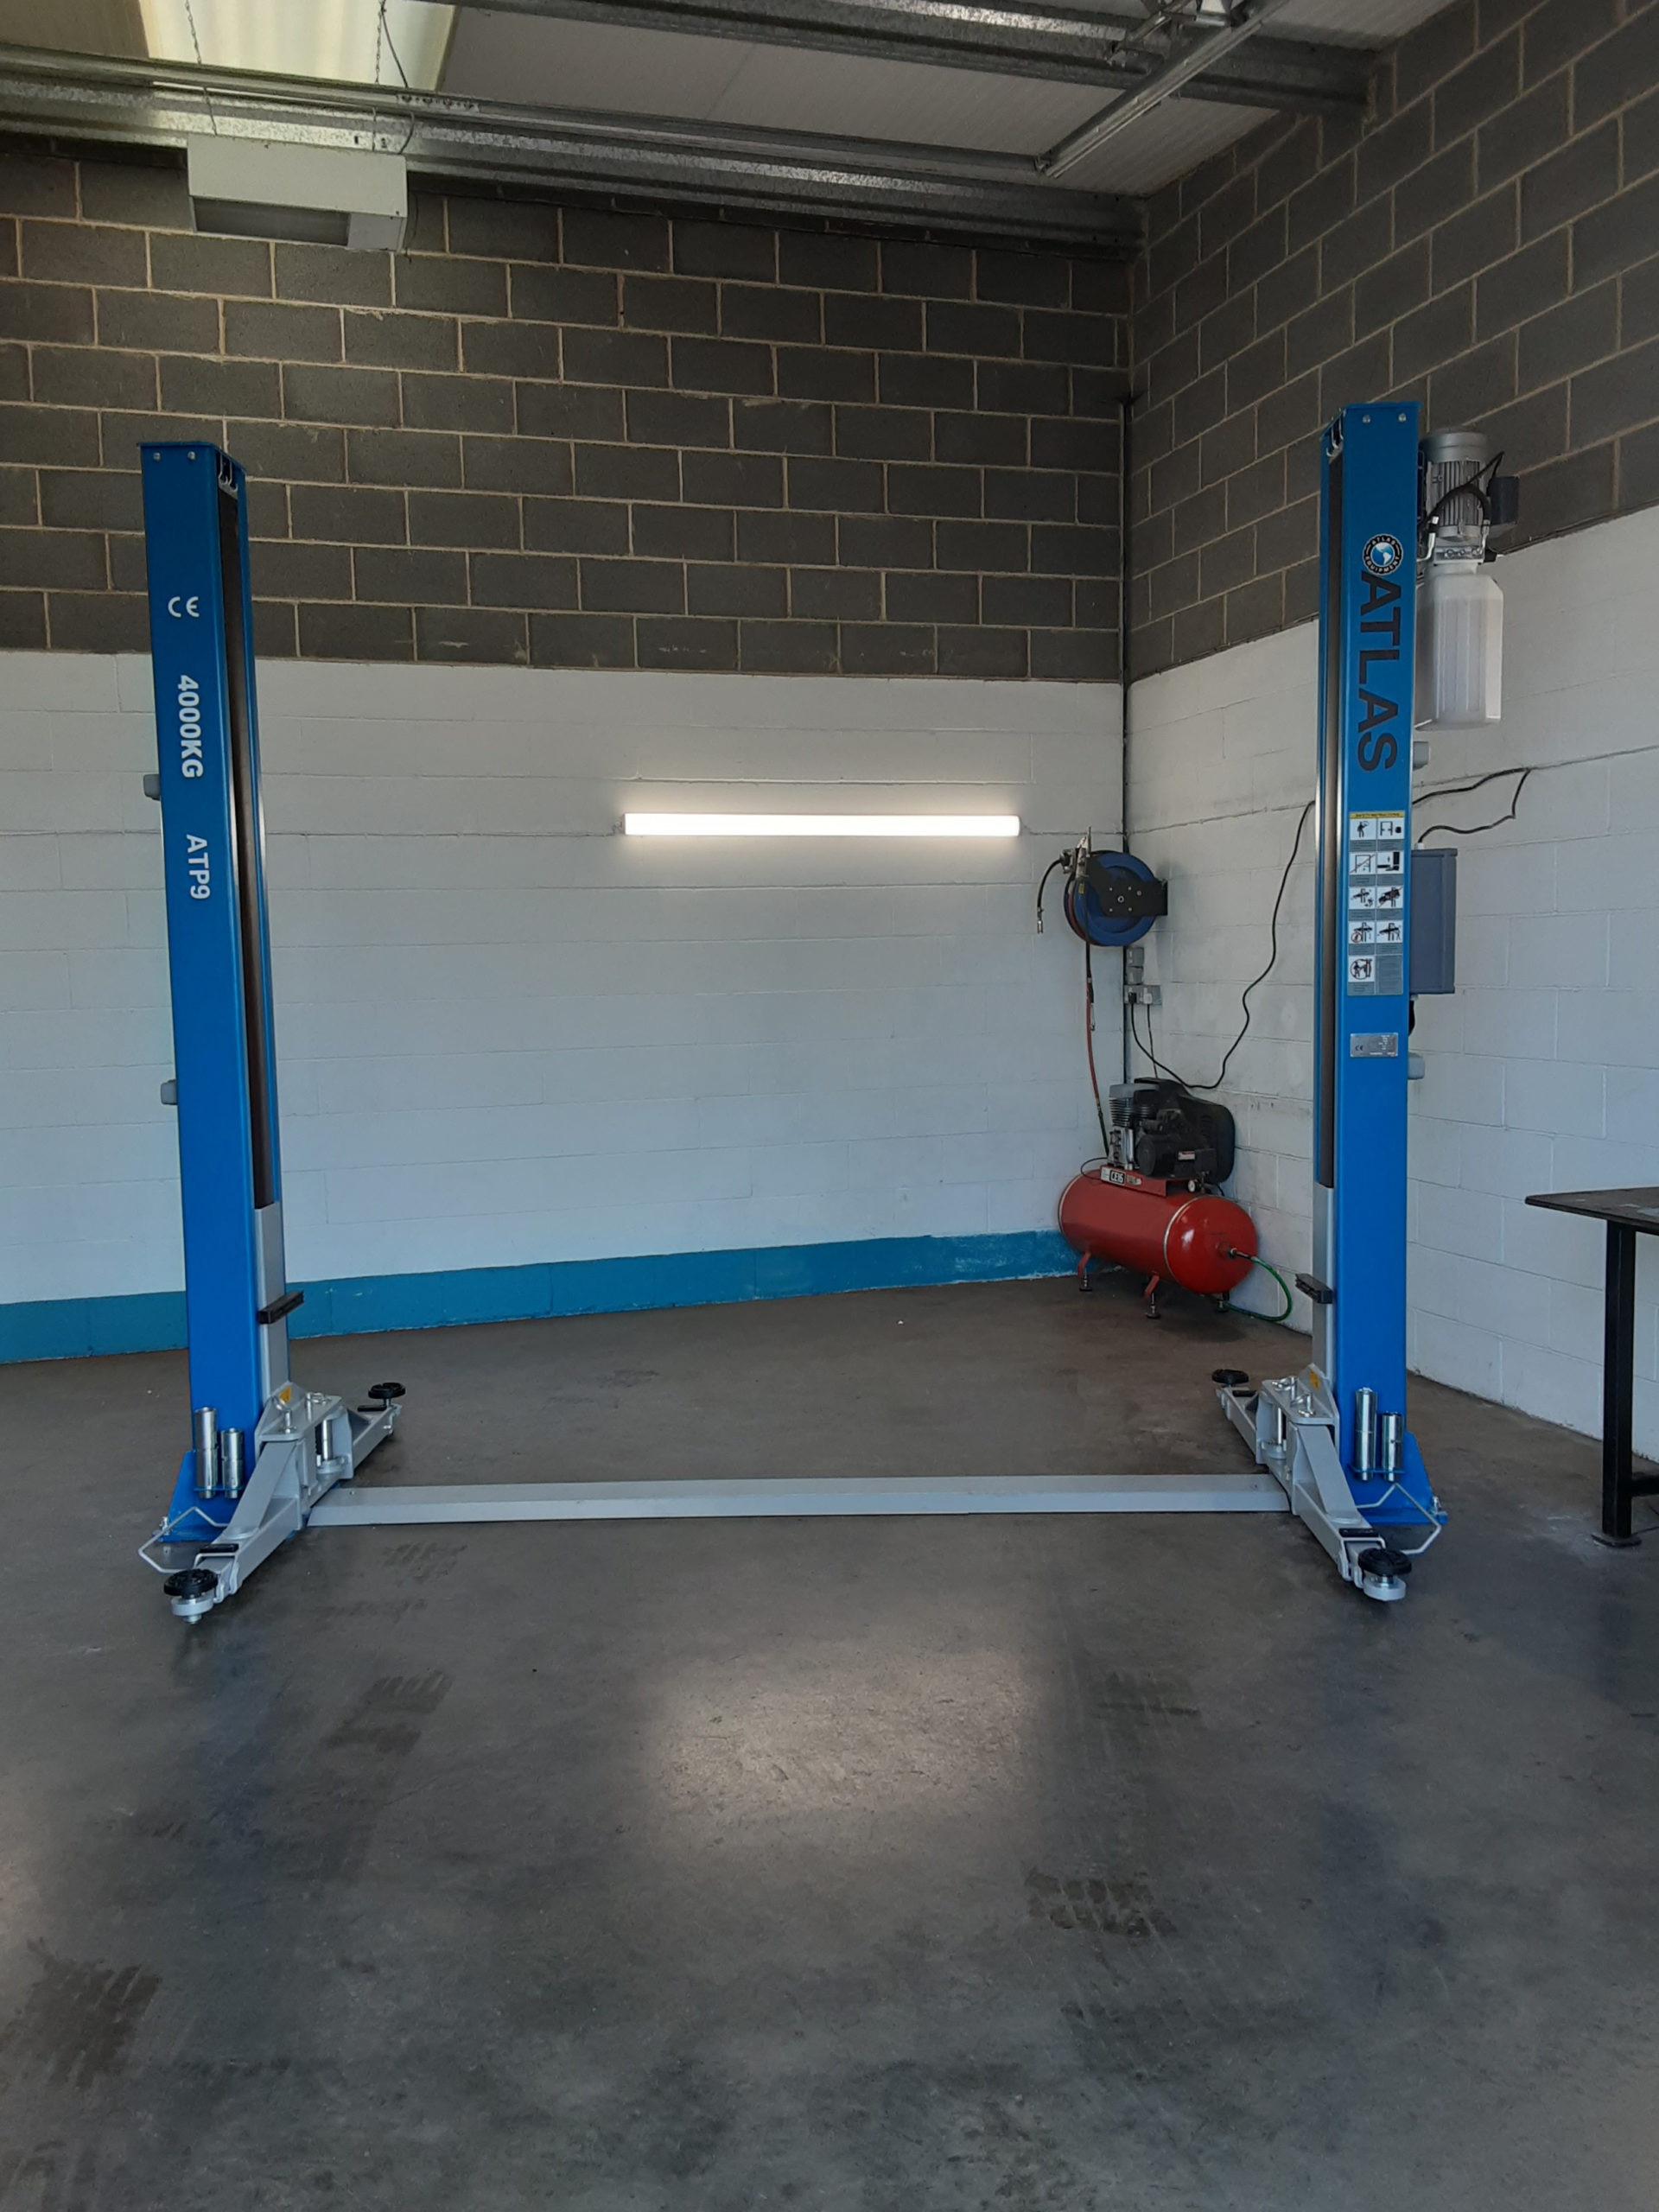 Our joint team of ISN Garage Assist and hofmann Megaplan engineers installed an Atlas ATP9 2 Post Car Lift at MMH Mobile Auto Services in Middlesborough.